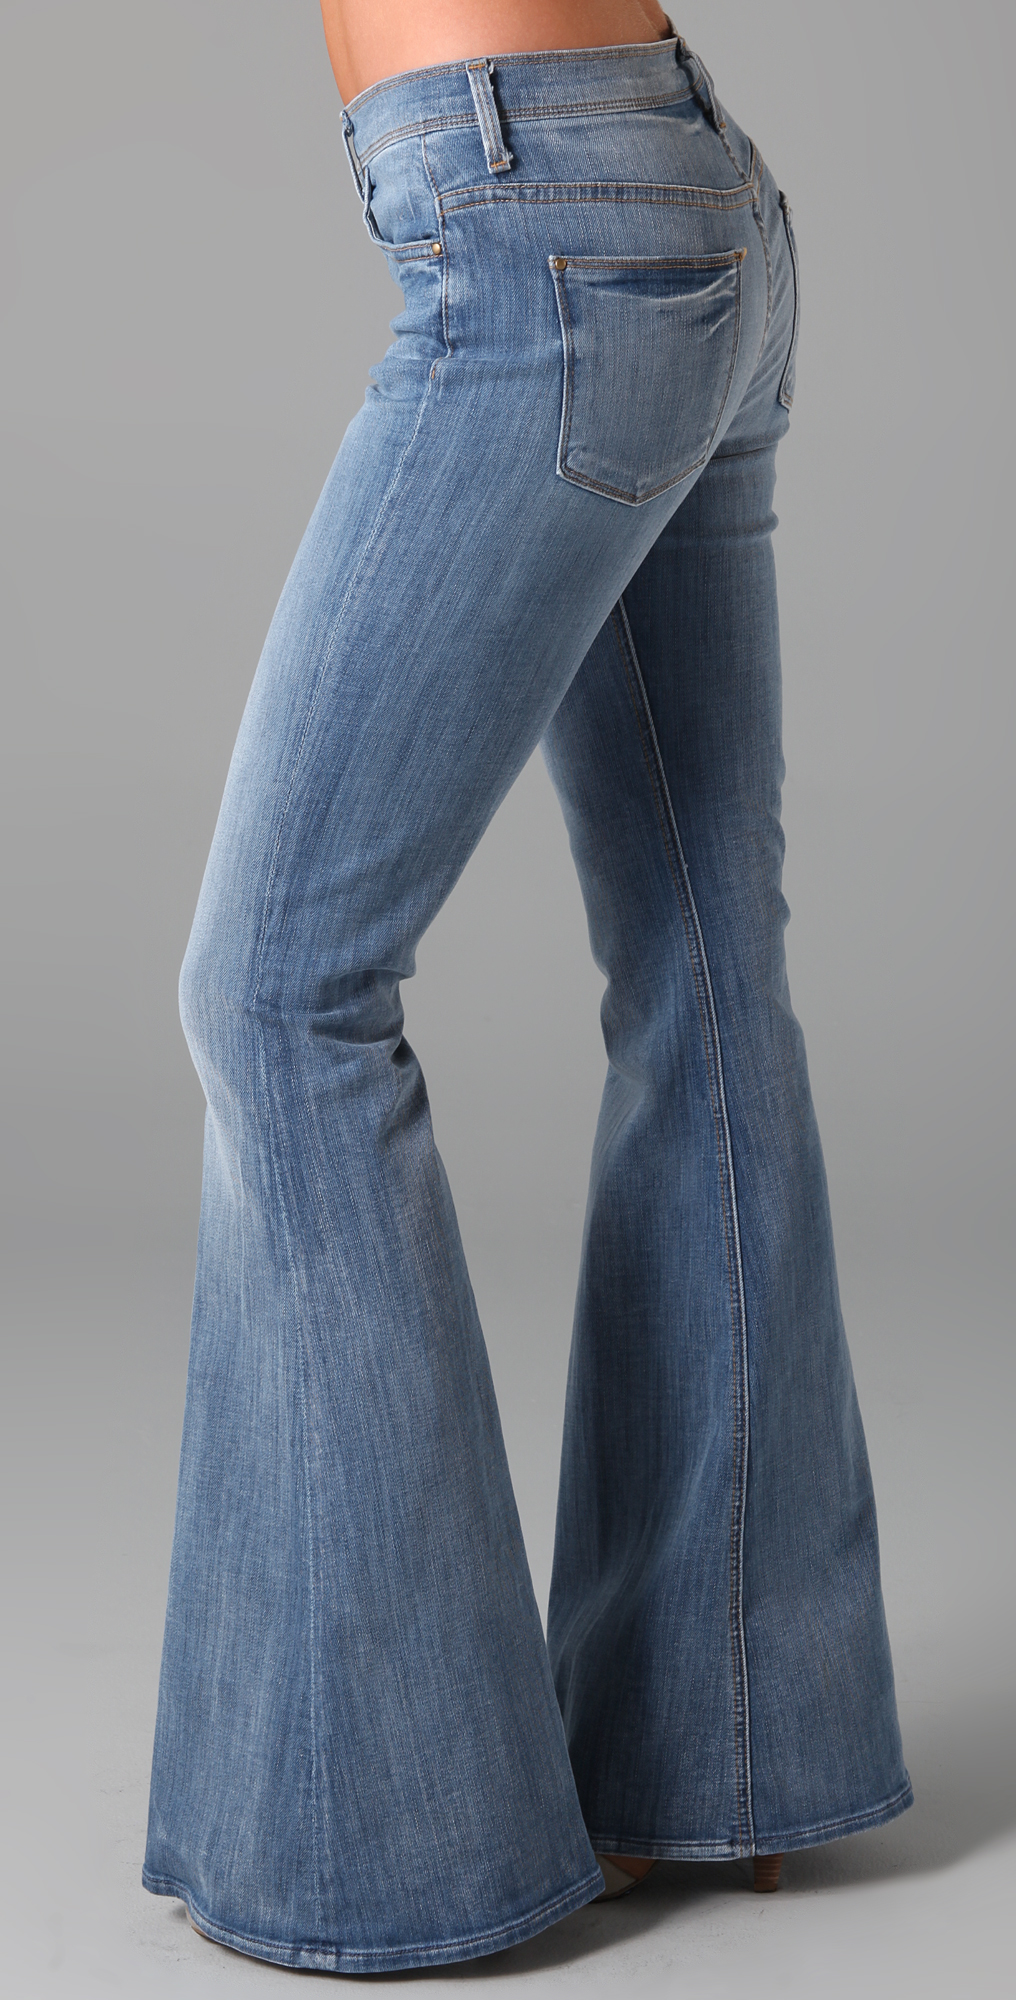 7 For All Mankind Bell Bottom Jeans | 15% off first app purchase ...